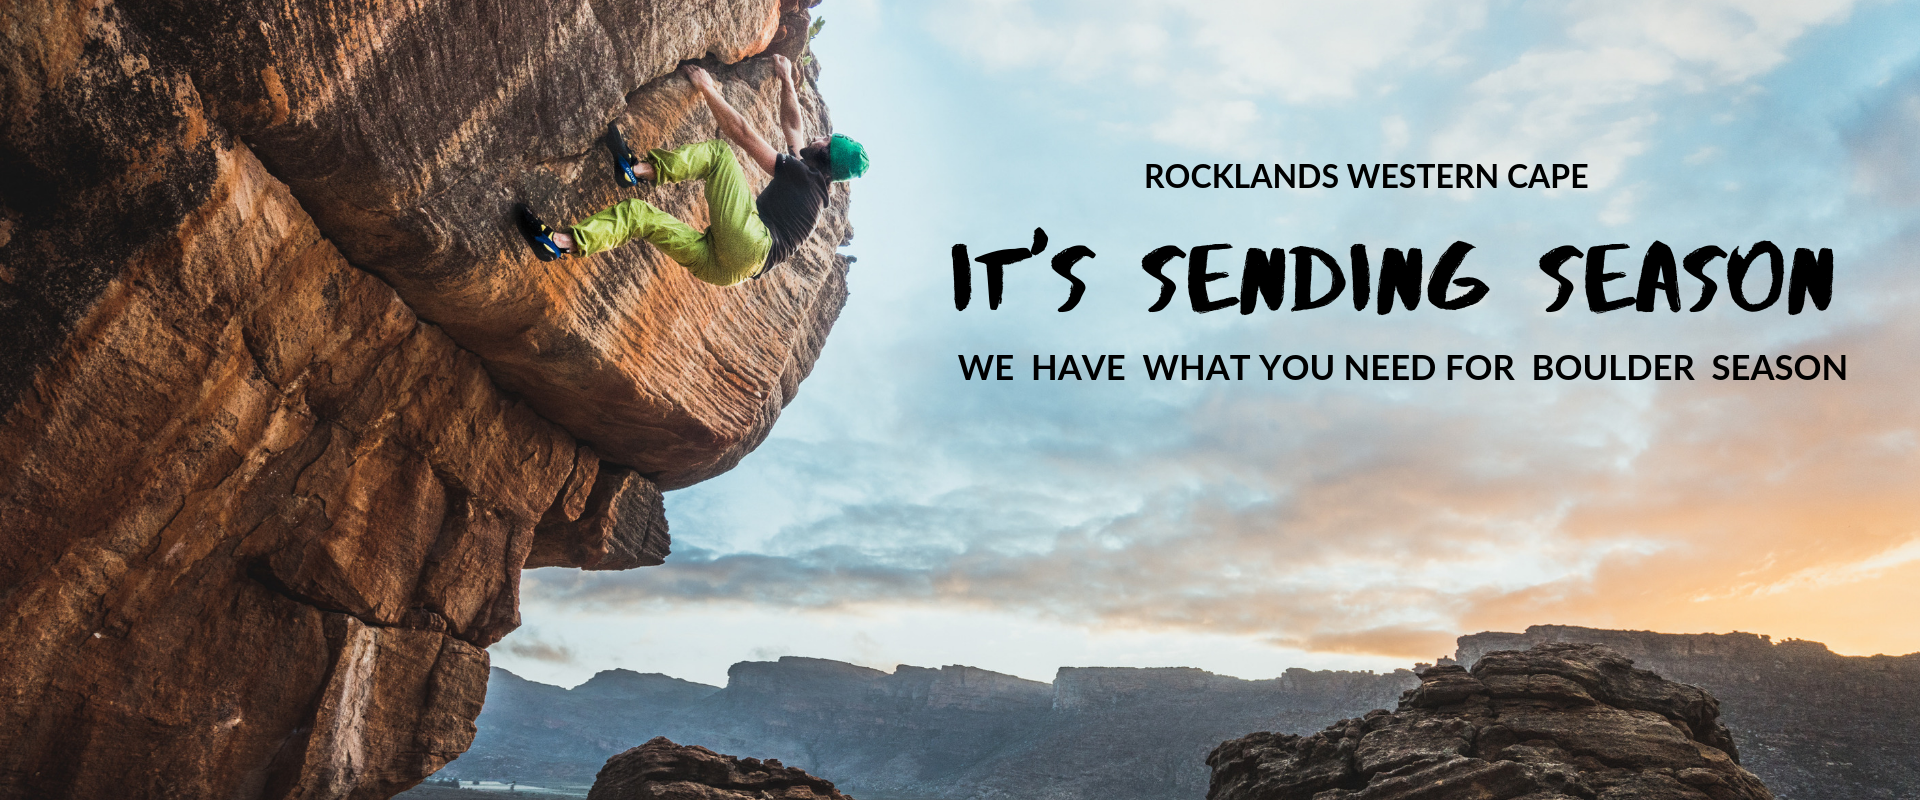 Rocklands Boulder Season